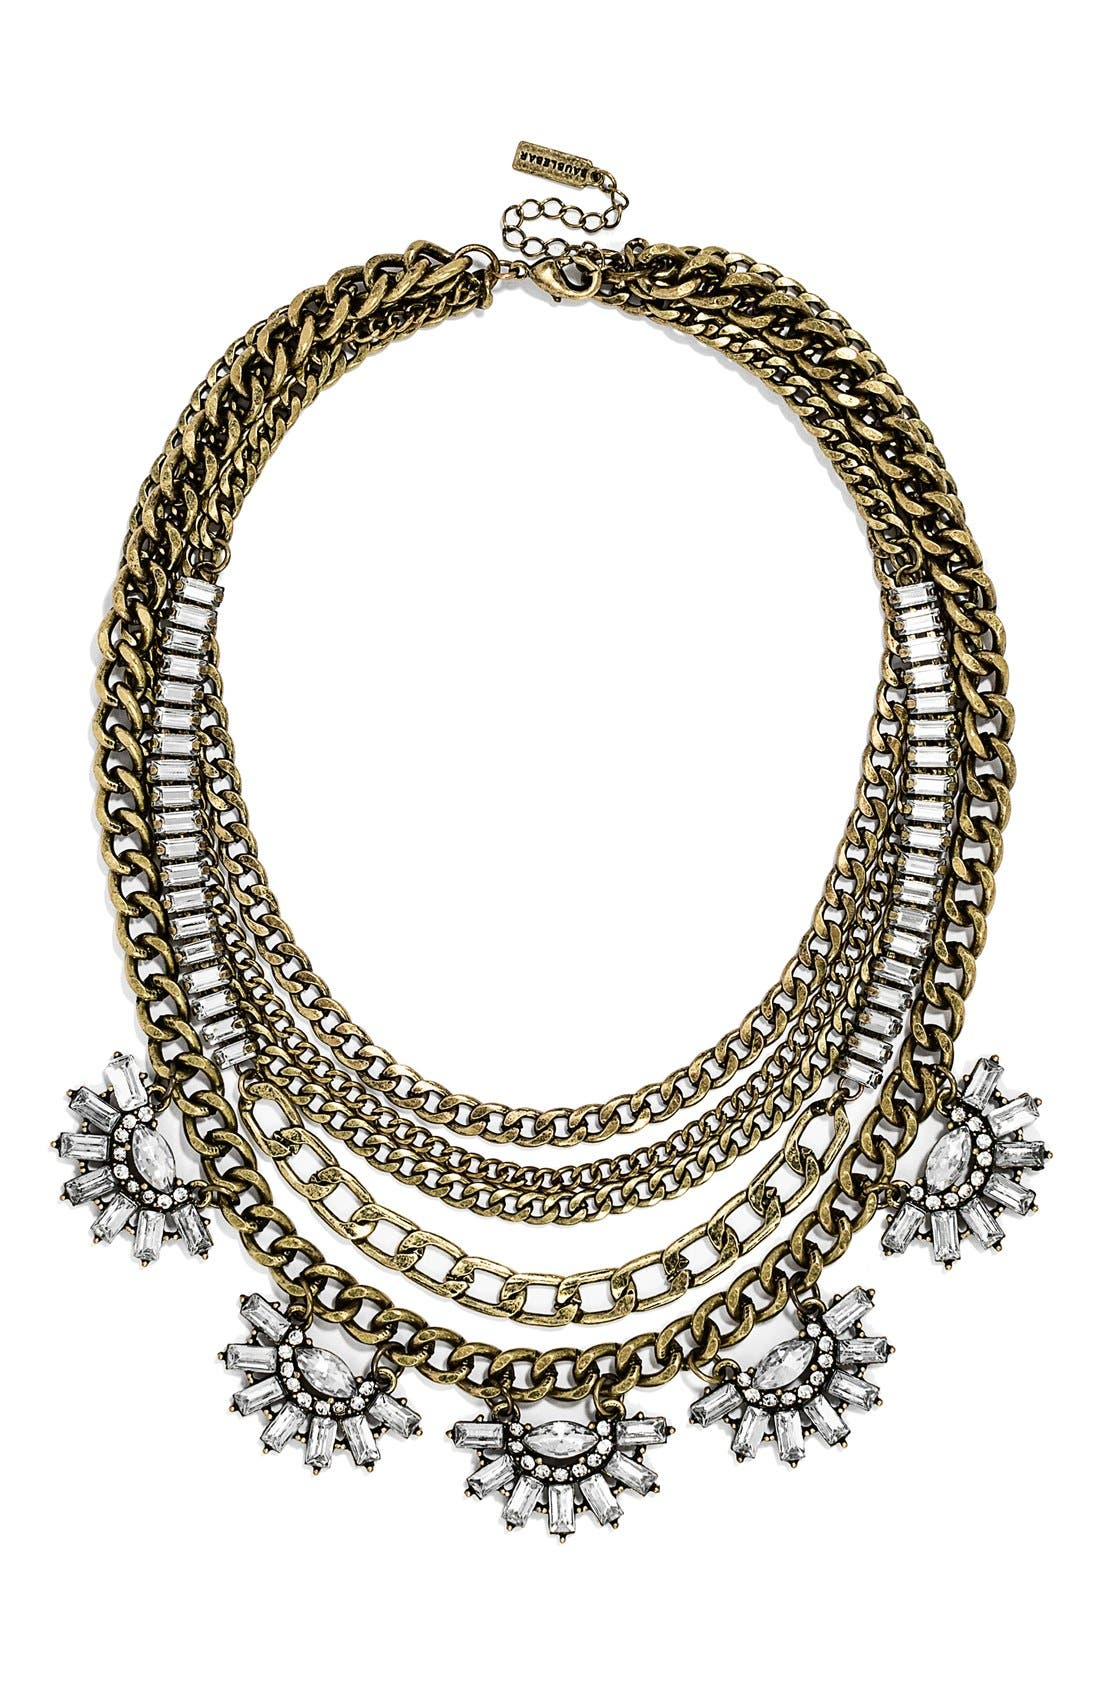 'Sundial' Chain Bib Necklace,                             Main thumbnail 1, color,                             710